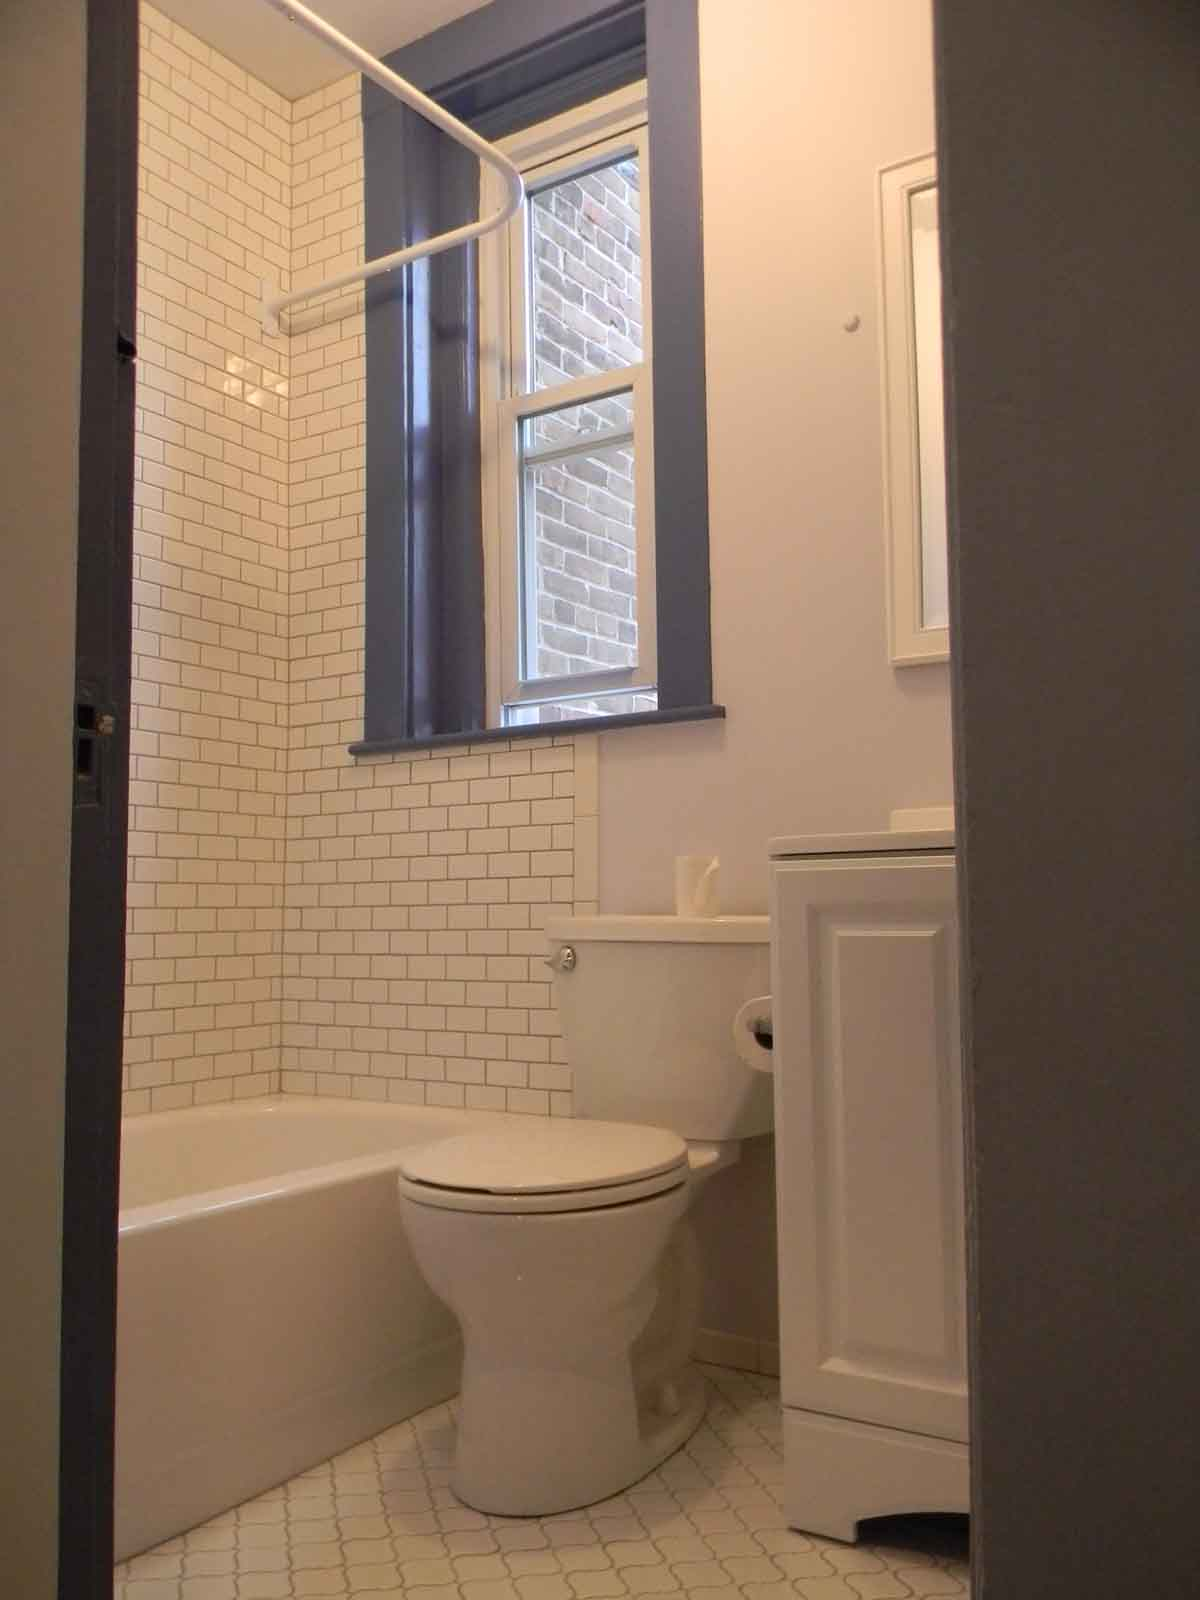 Cottage St. Cambridge - After Bathroom Remodel - New Spacious Layout with Hidden Plumbing